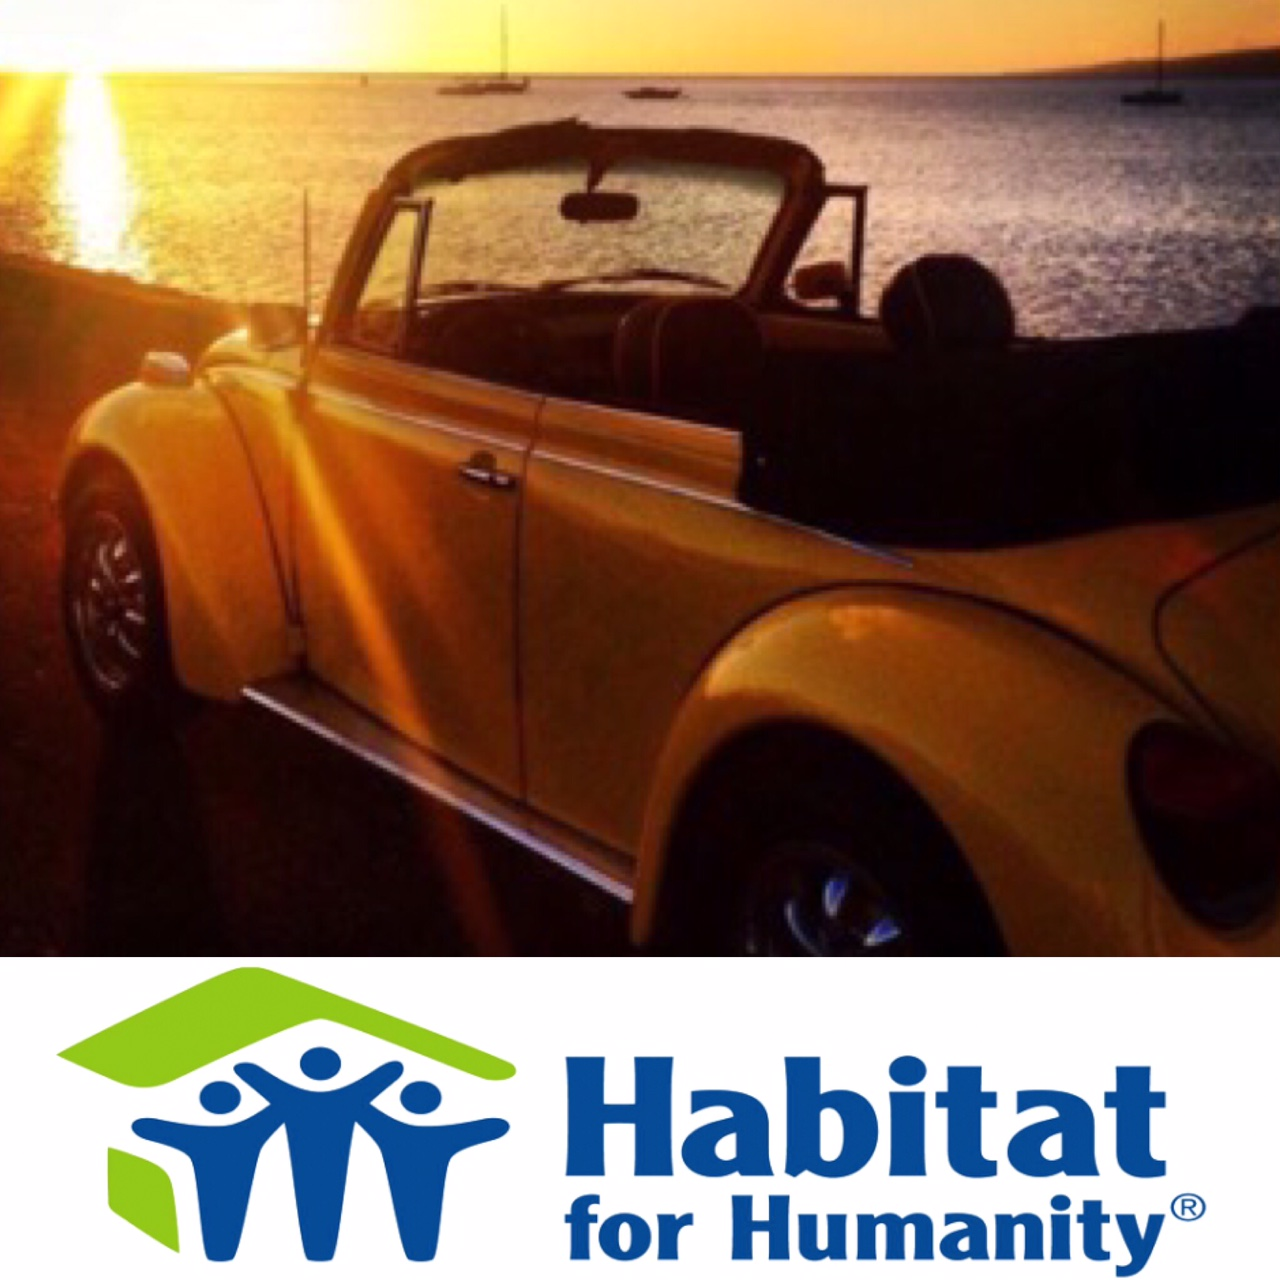 1975 Volkswagen Beetle Donated to Habitat for Humanity